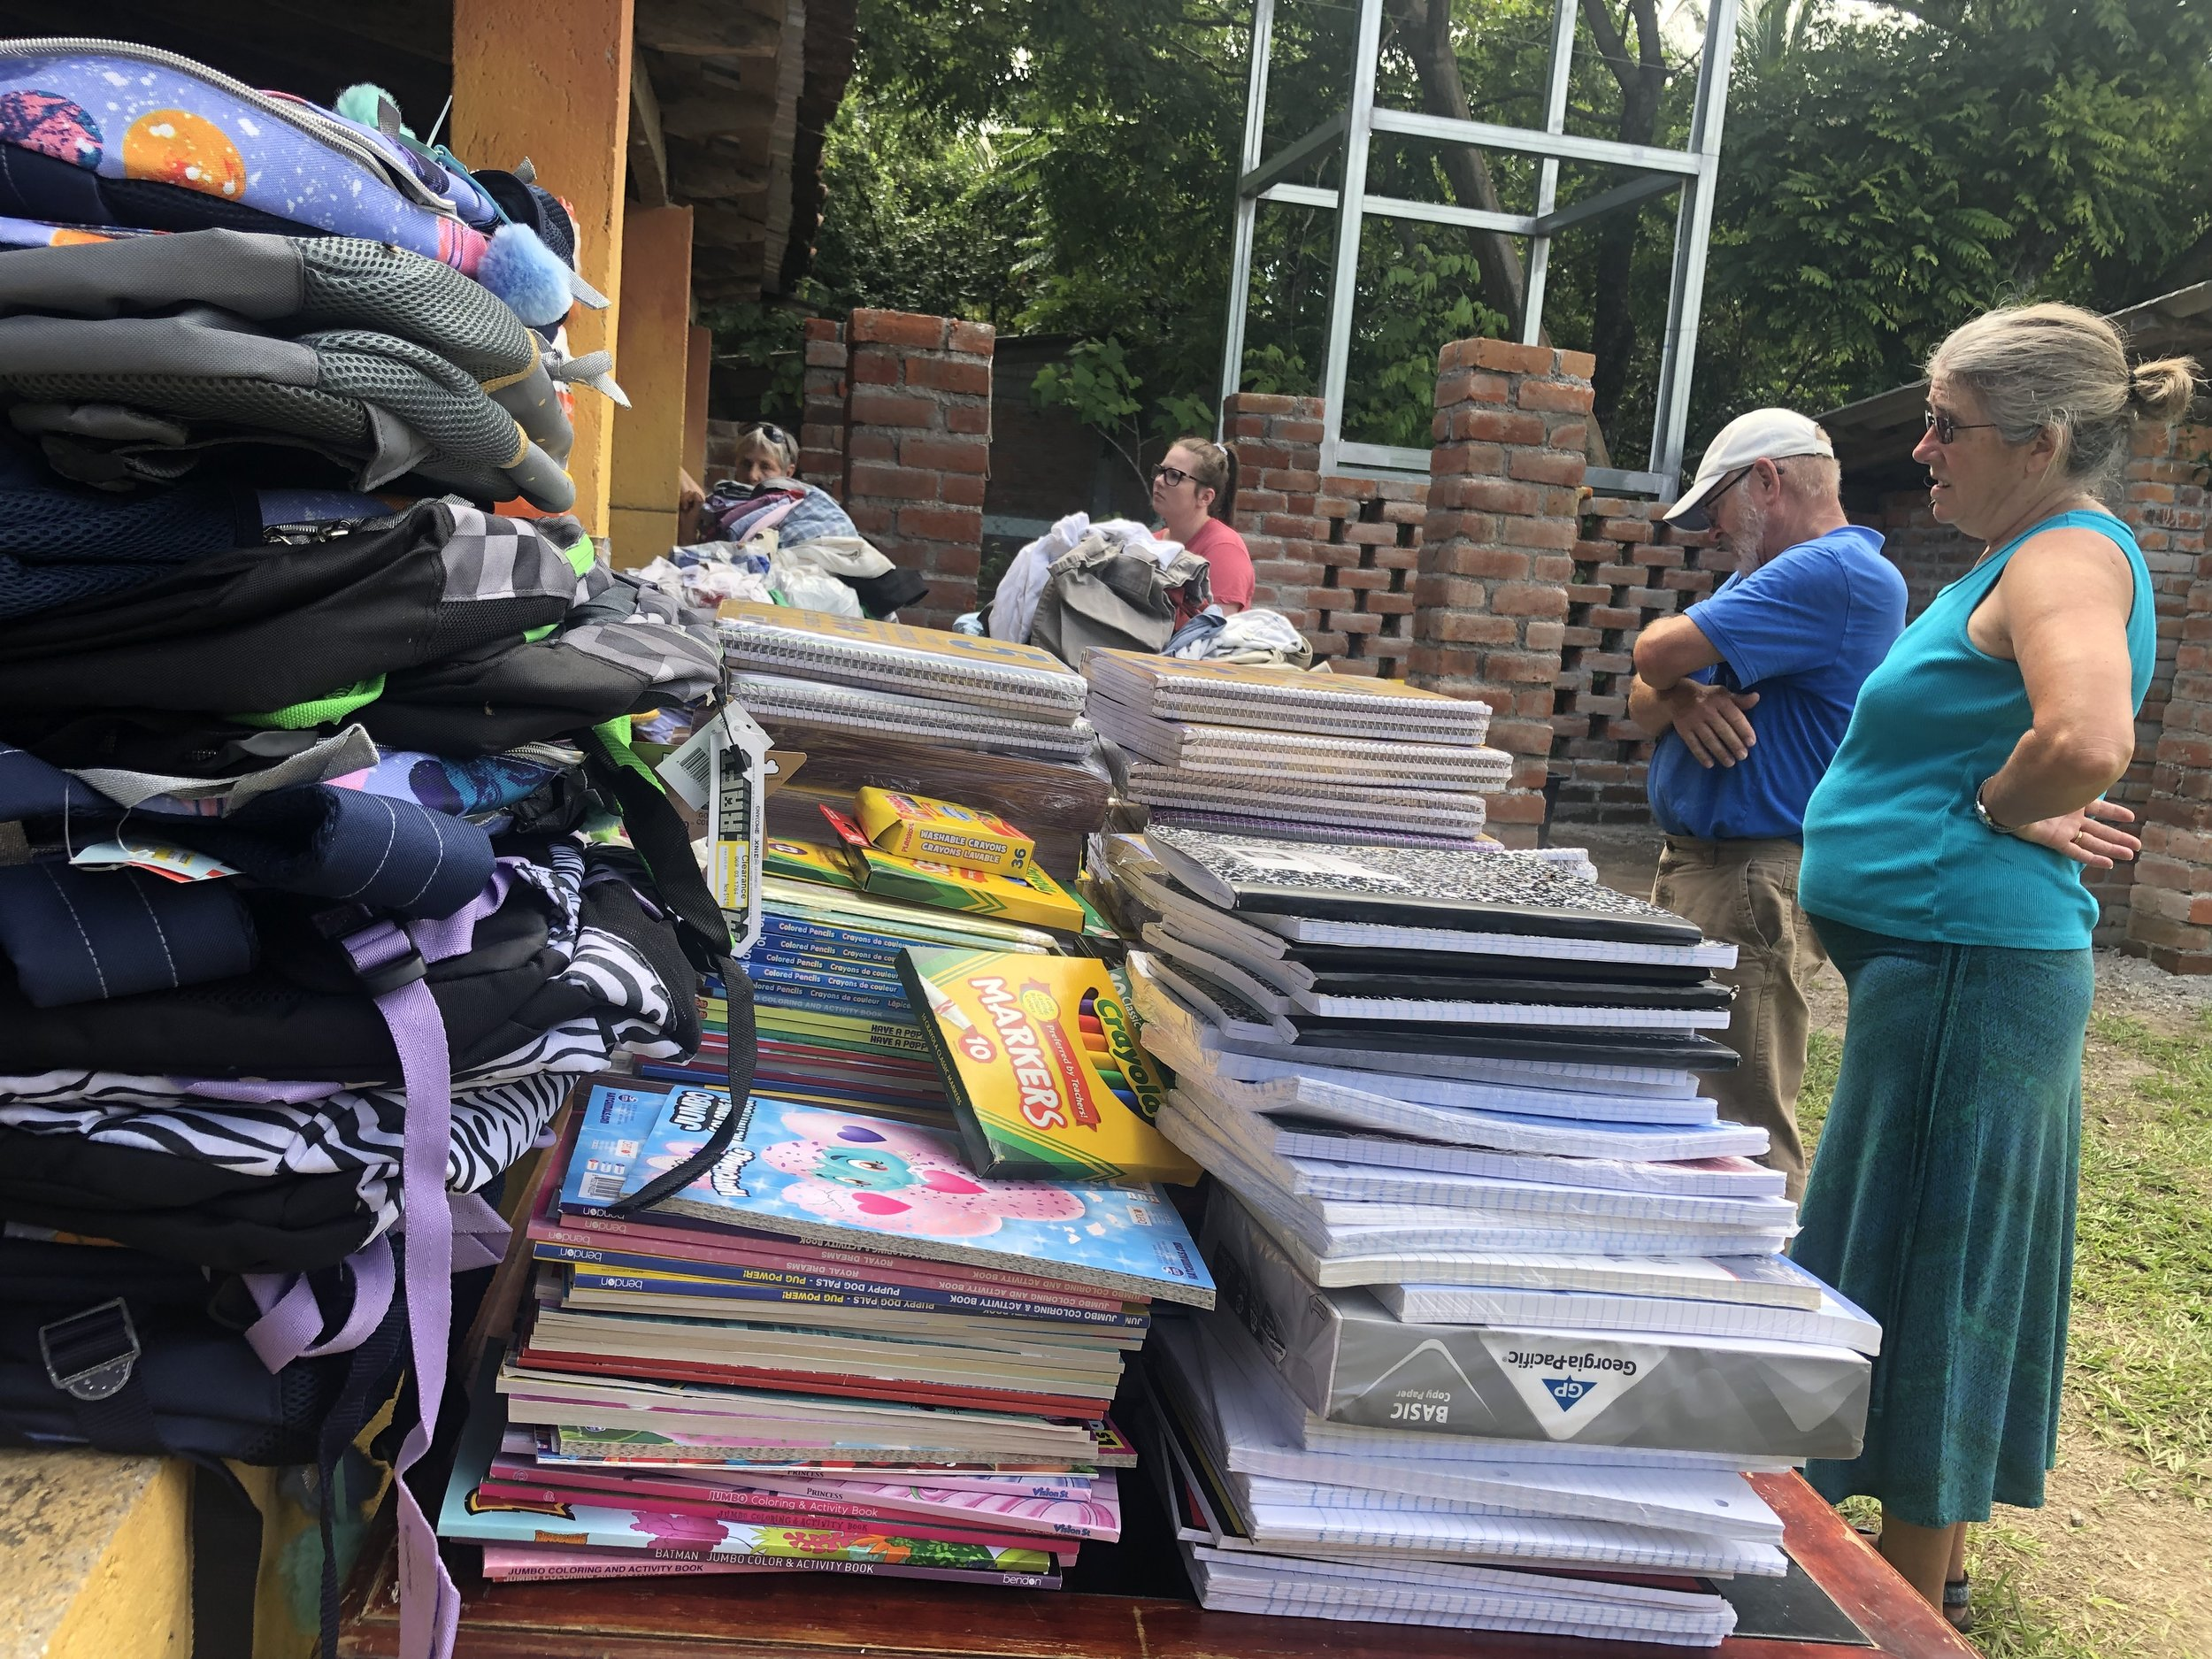 A large portion of the donations the friends and family visitors brought were school supplies! After sorting through them we took them to the school the next day.